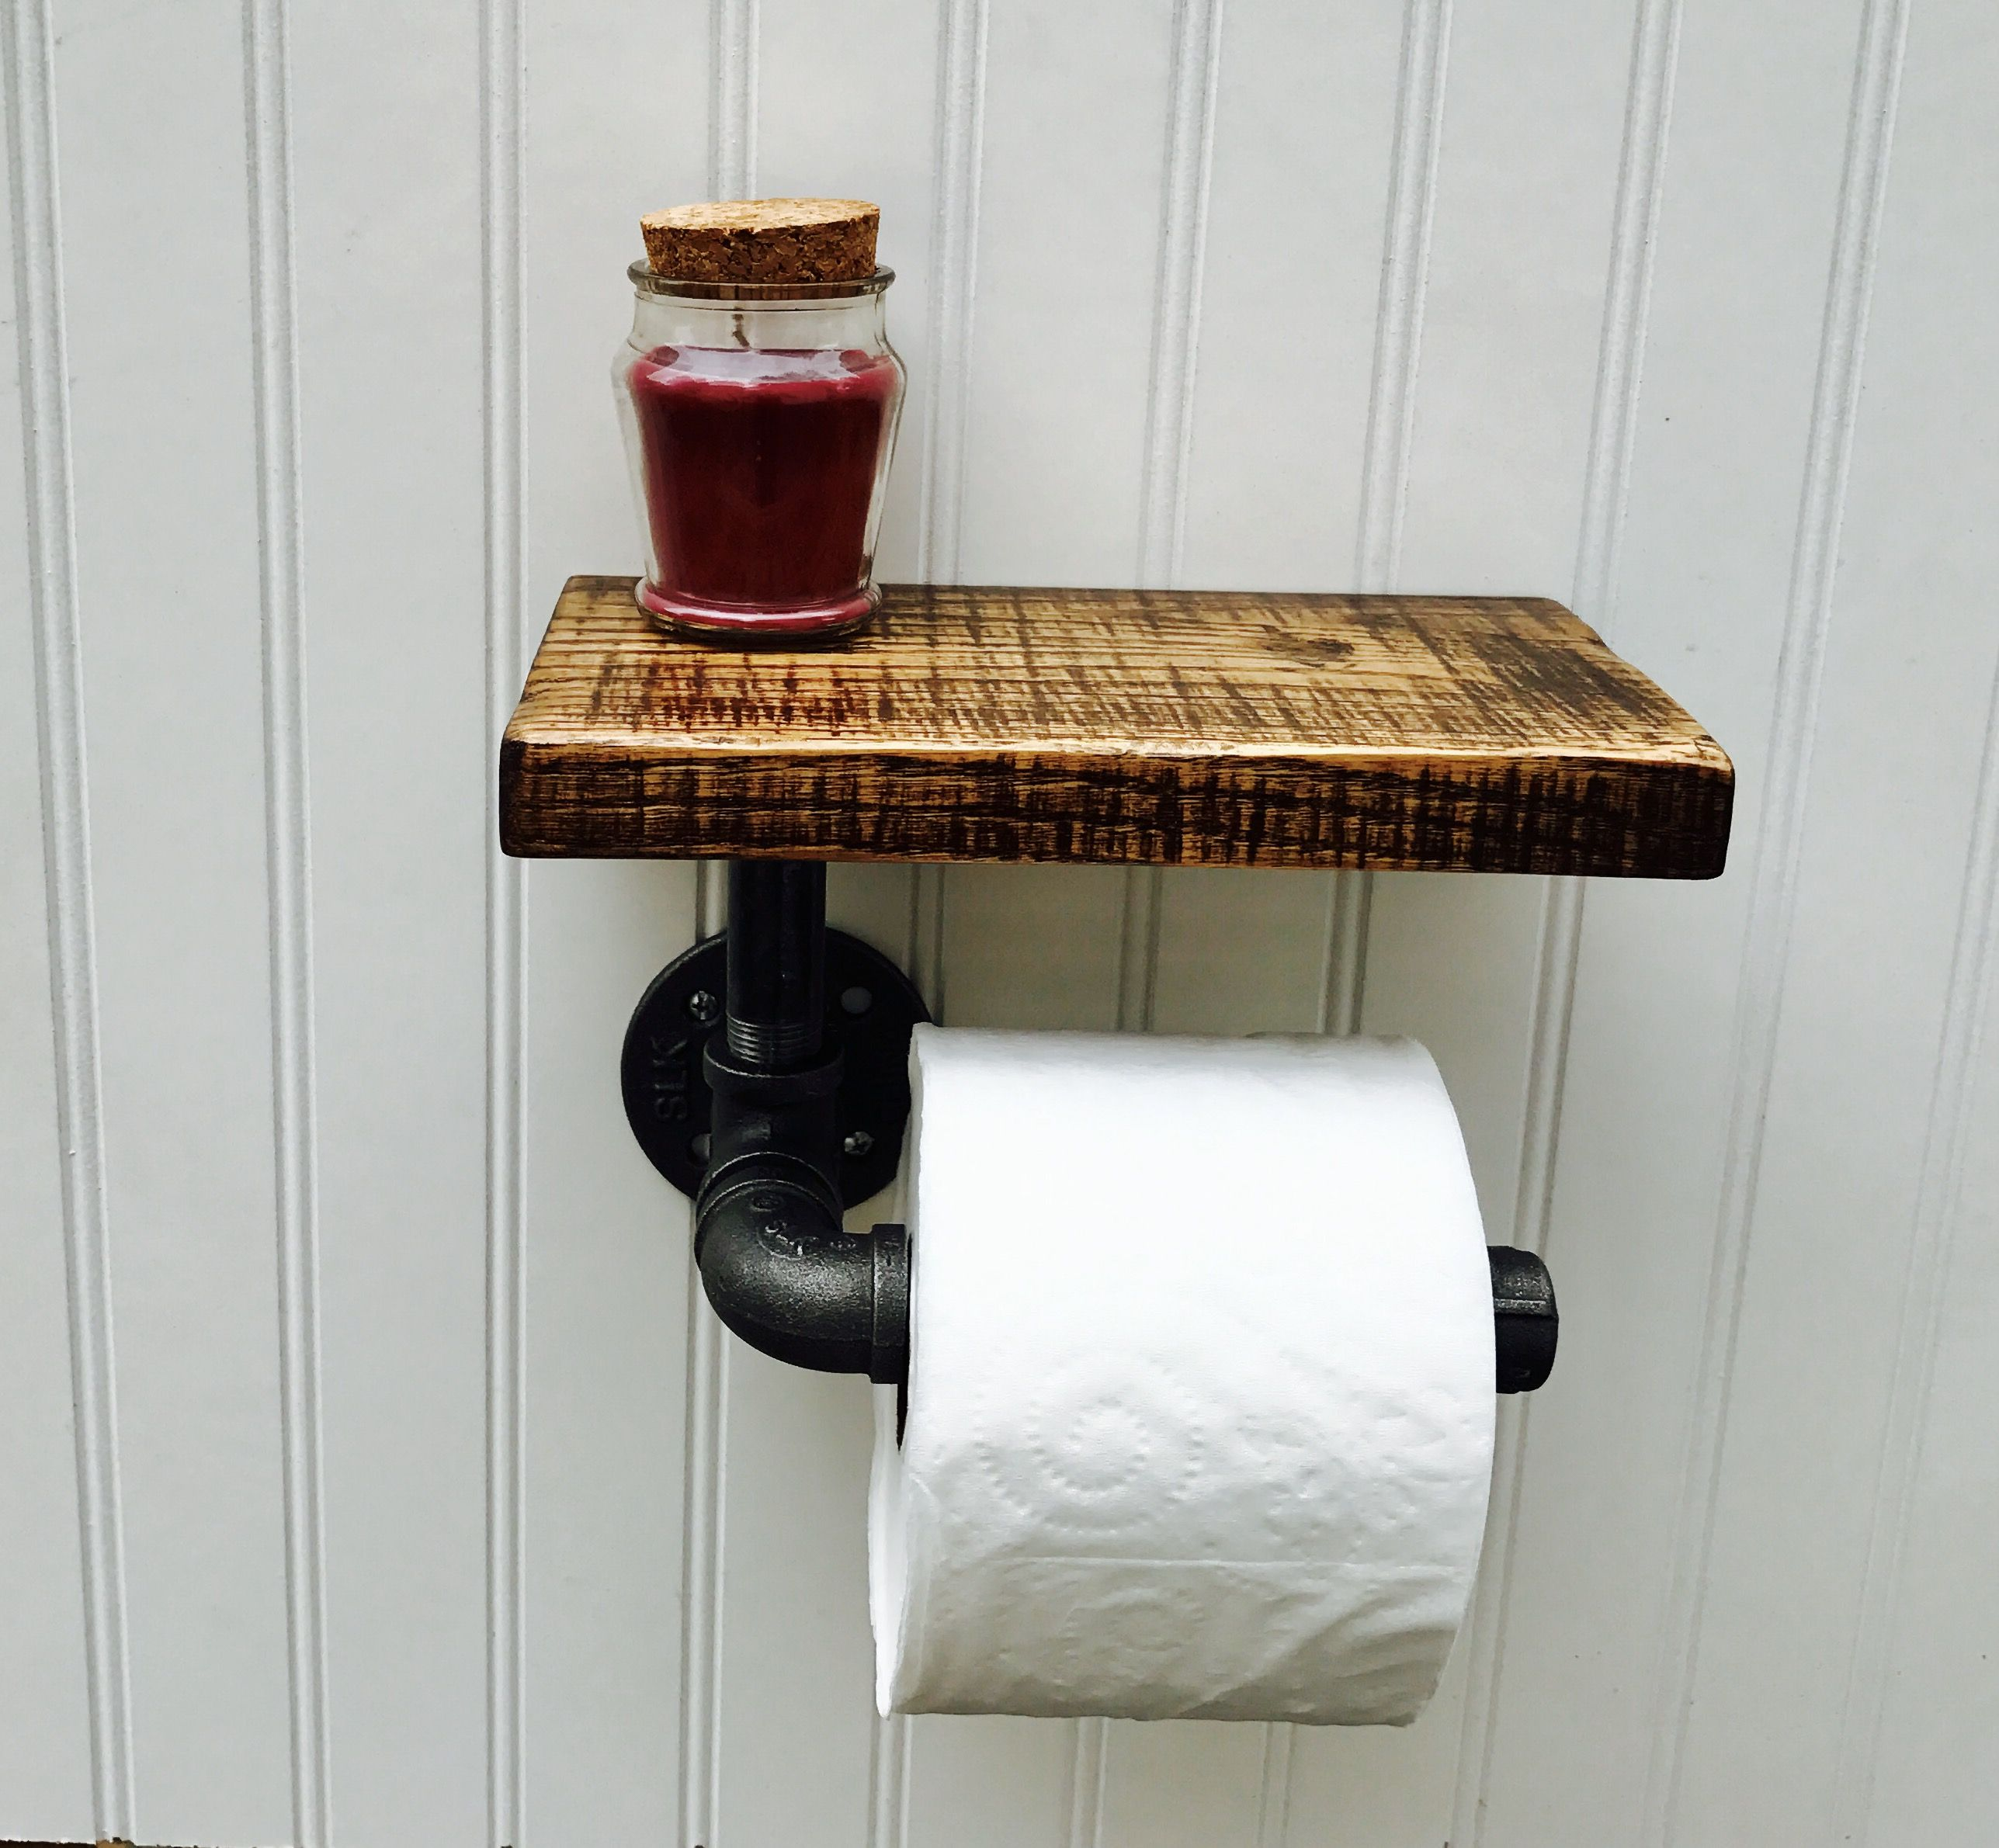 Buy A Hand Crafted Rustic Oak And Pipe Toilet Paper Holder Made To Order From Timberforge